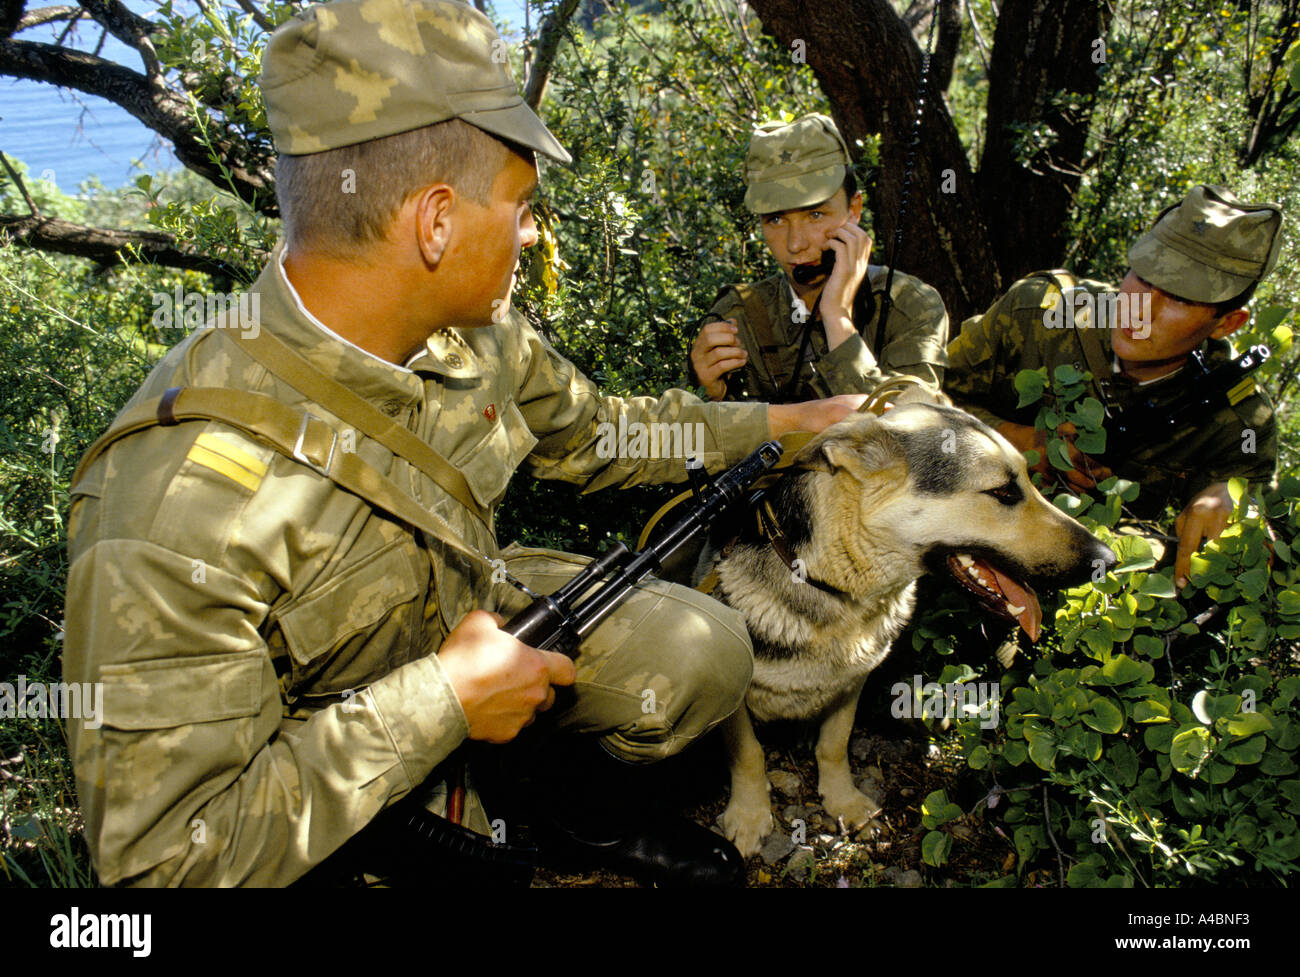 KGB border guards on patrol with their dog in Gursfuv, the Crimea, Russia June 1990 Stock Photo